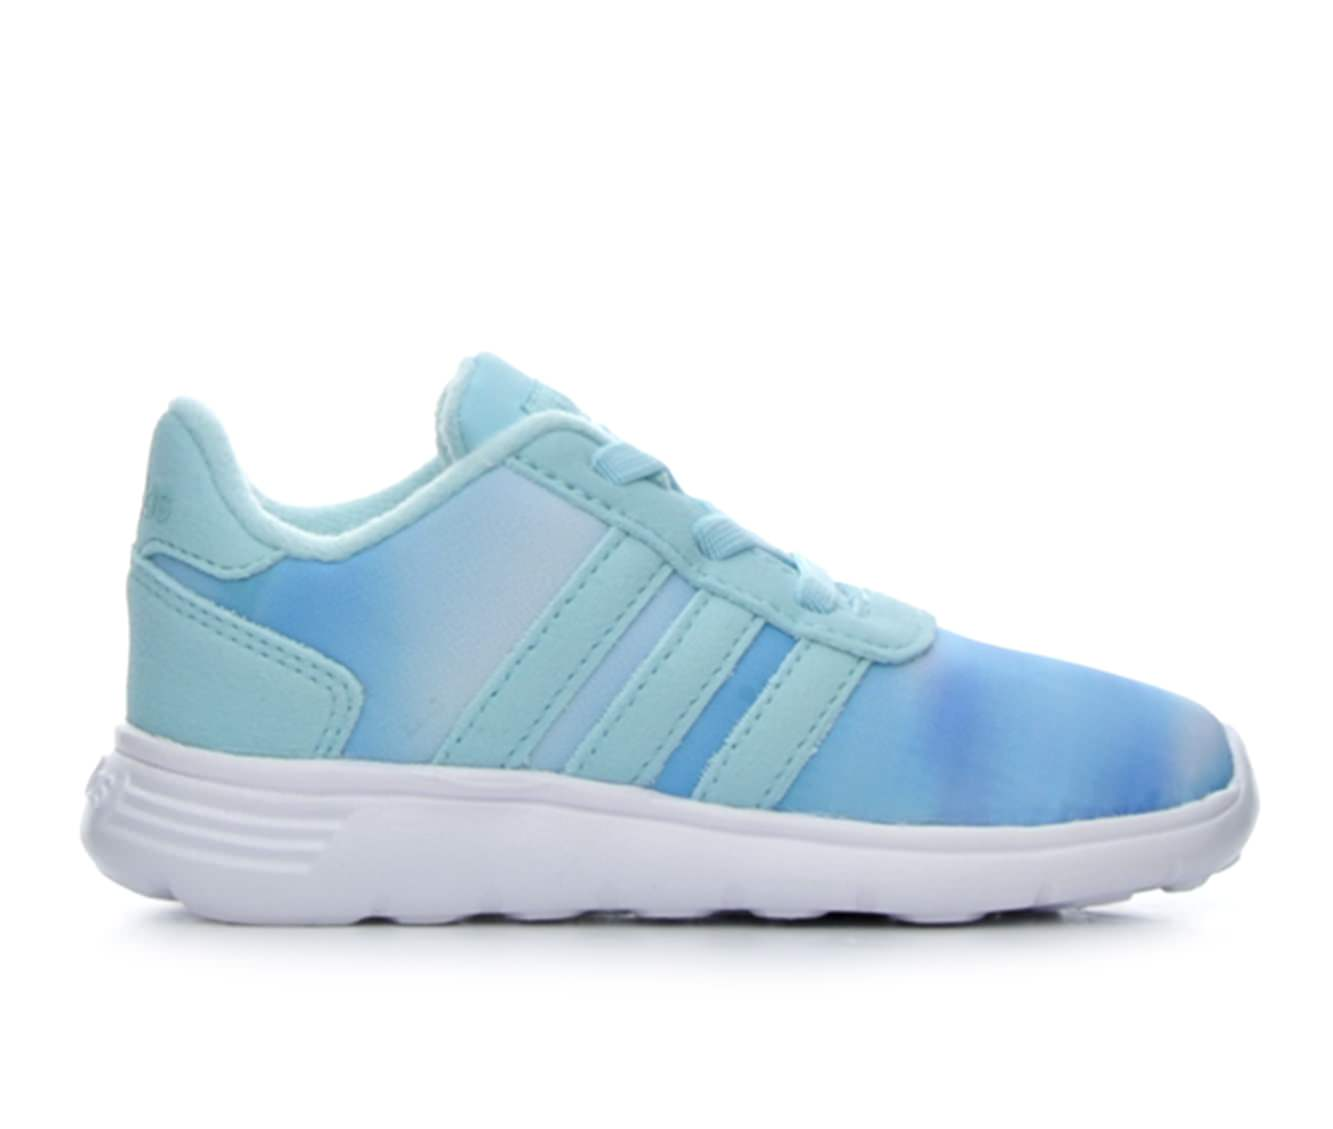 Girls' Adidas Infant Lite Racer Sneakers (Blue - Size 4 - ) 1616281